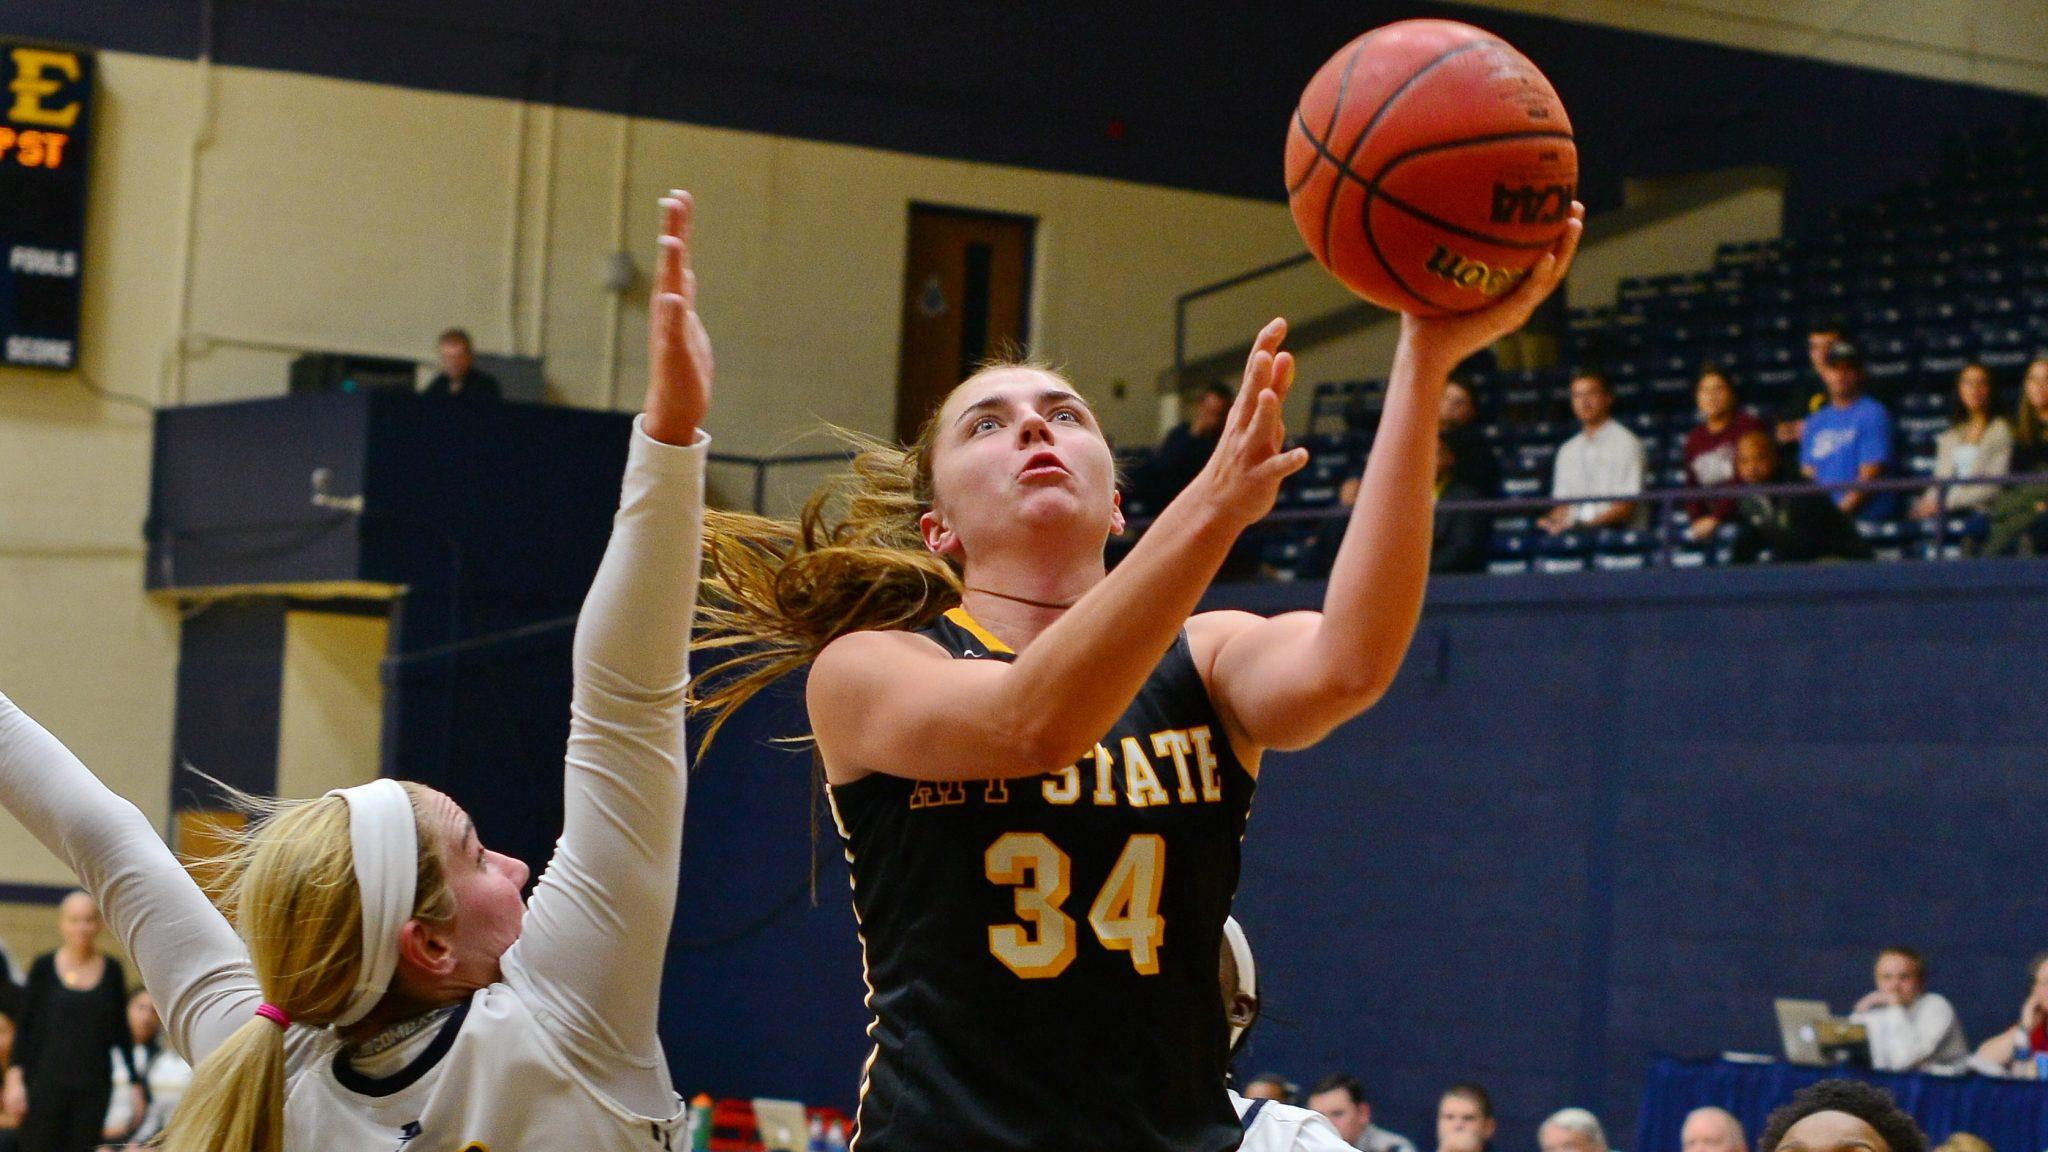 Story+scored+31+points+tying+her+career+high.+Photo+courtesy%3A+App+State+Athletics%2FDiana+Gates+